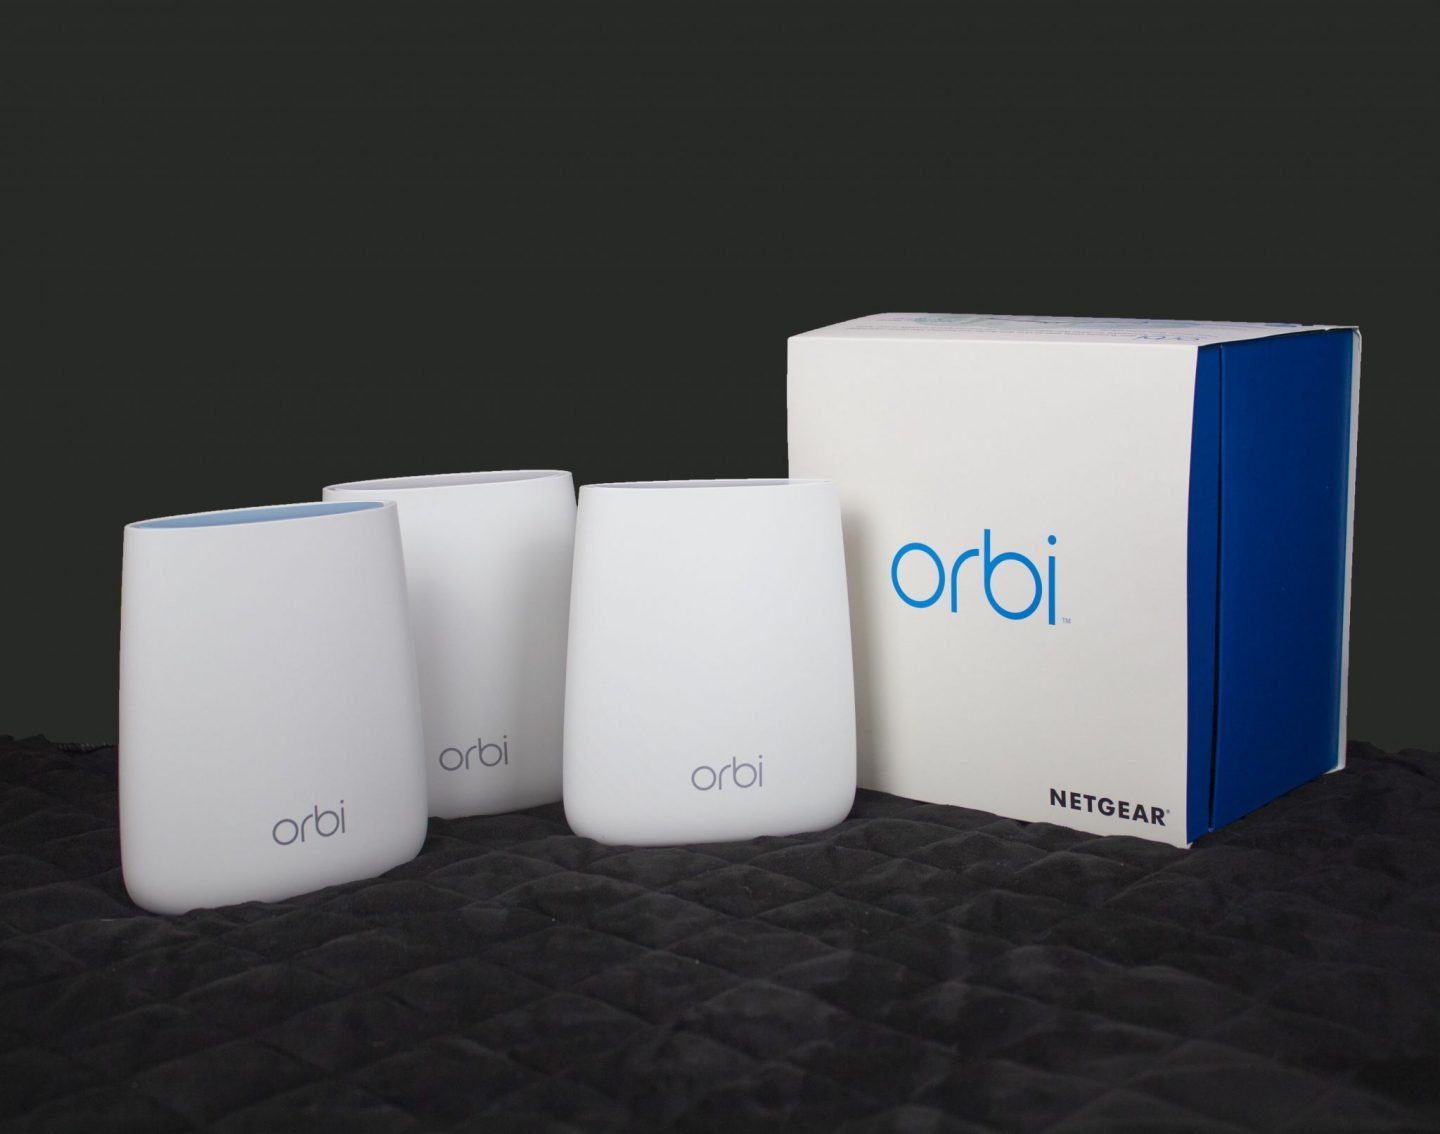 Orbio Mesh WiFi system, Orbi RBK 23, Orbi Voice, orbi RBK 23 review, Orbi Voice review